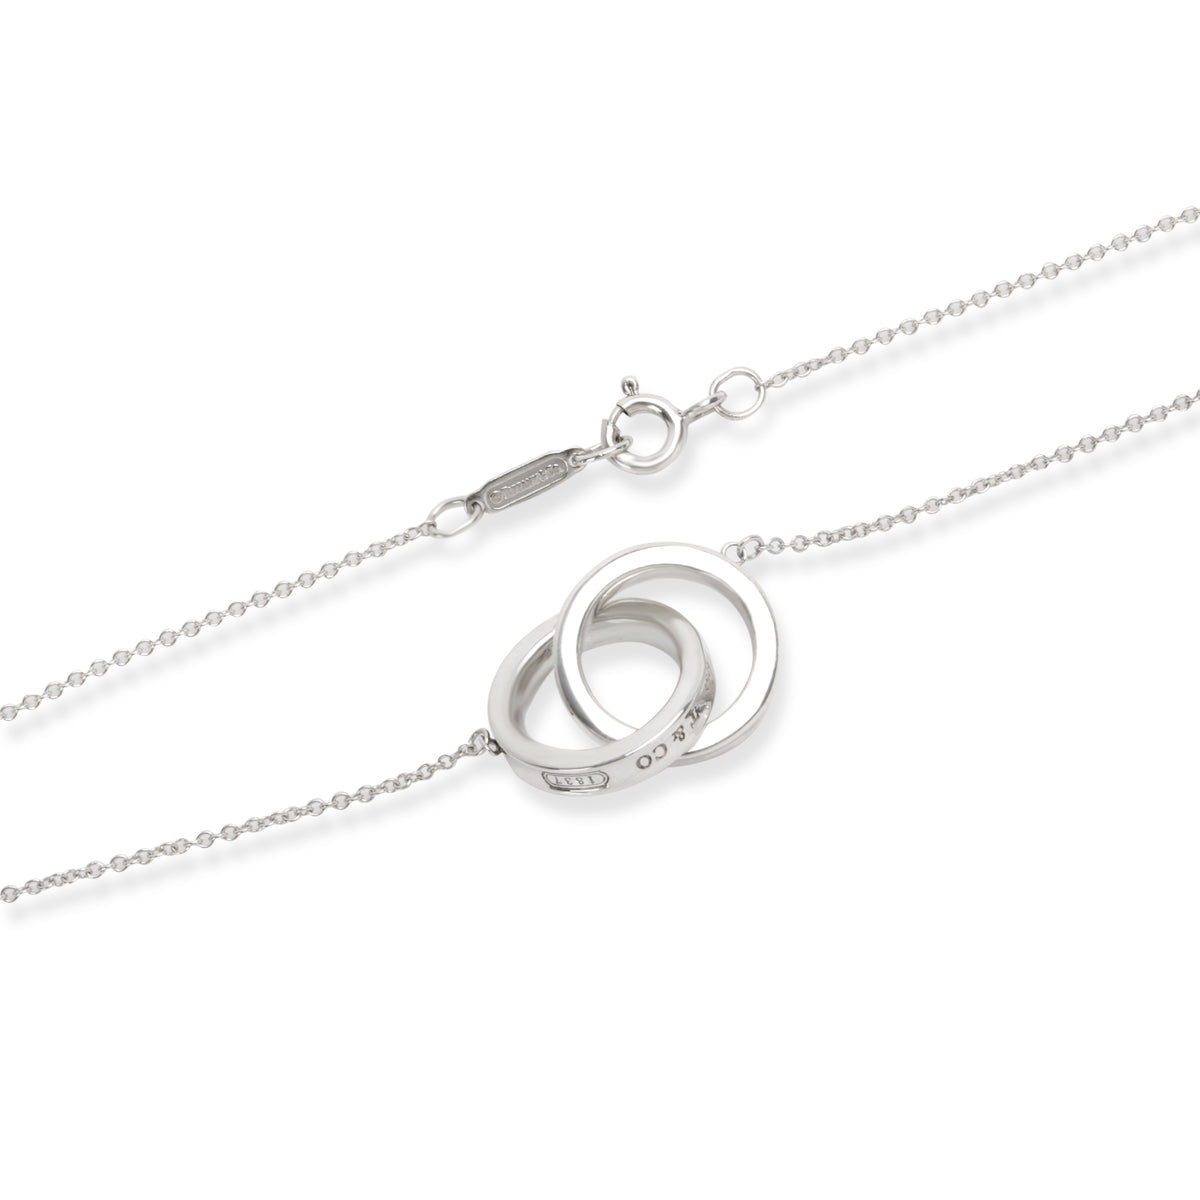 Tiffany & Co. 1837 Interlocking Circles Necklace in Sterling Silver